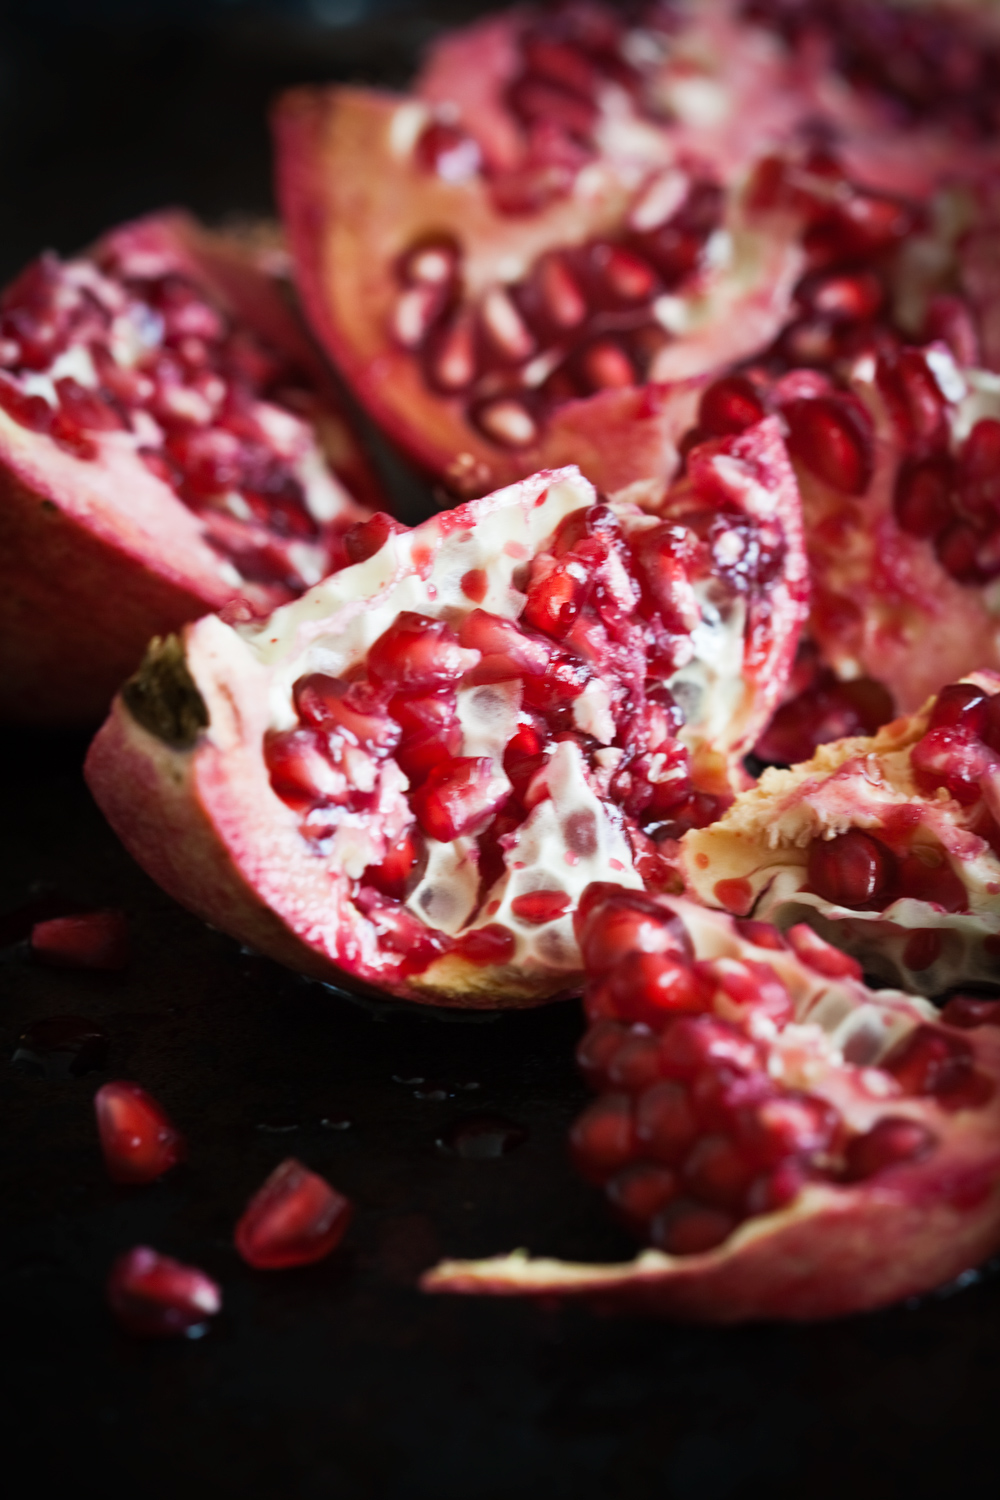 Long exposures can be used for still life indoors pomegranate - Tips for Better Results When Shooting in Low Light Conditions